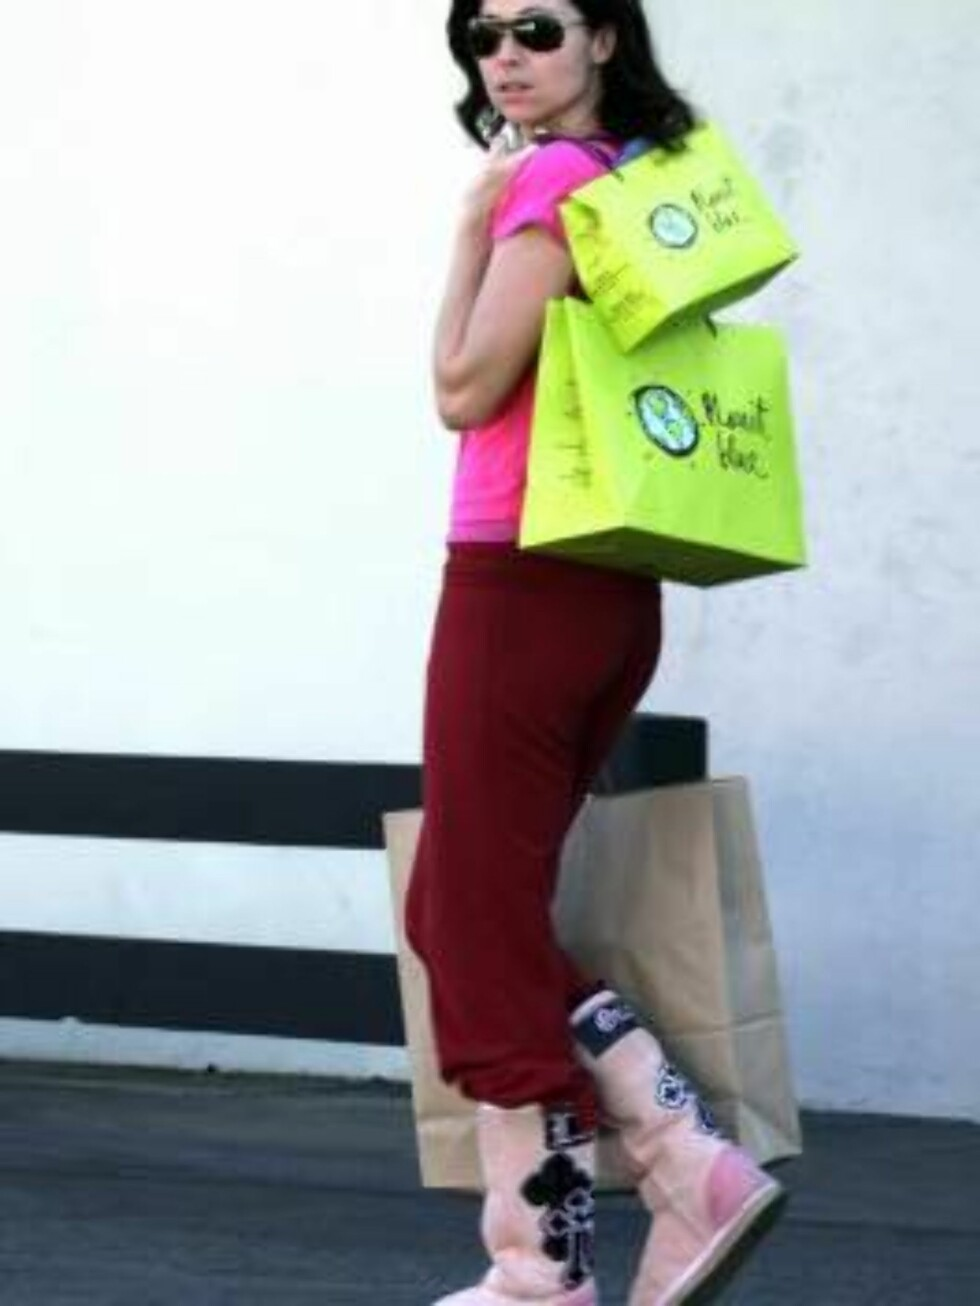 Code: X17XX8 - no code, Malibu, USA, 11.01.2005: Minnie Driver wears pink while shopping at Planet Blue in Malibu.  She sported pink Uggs with wine-colored sweatpants and a hot pink baby-T.  All Over Press / X17 Picture Agency   EXCLUSIVE / ALL OVER P Foto: All Over Press